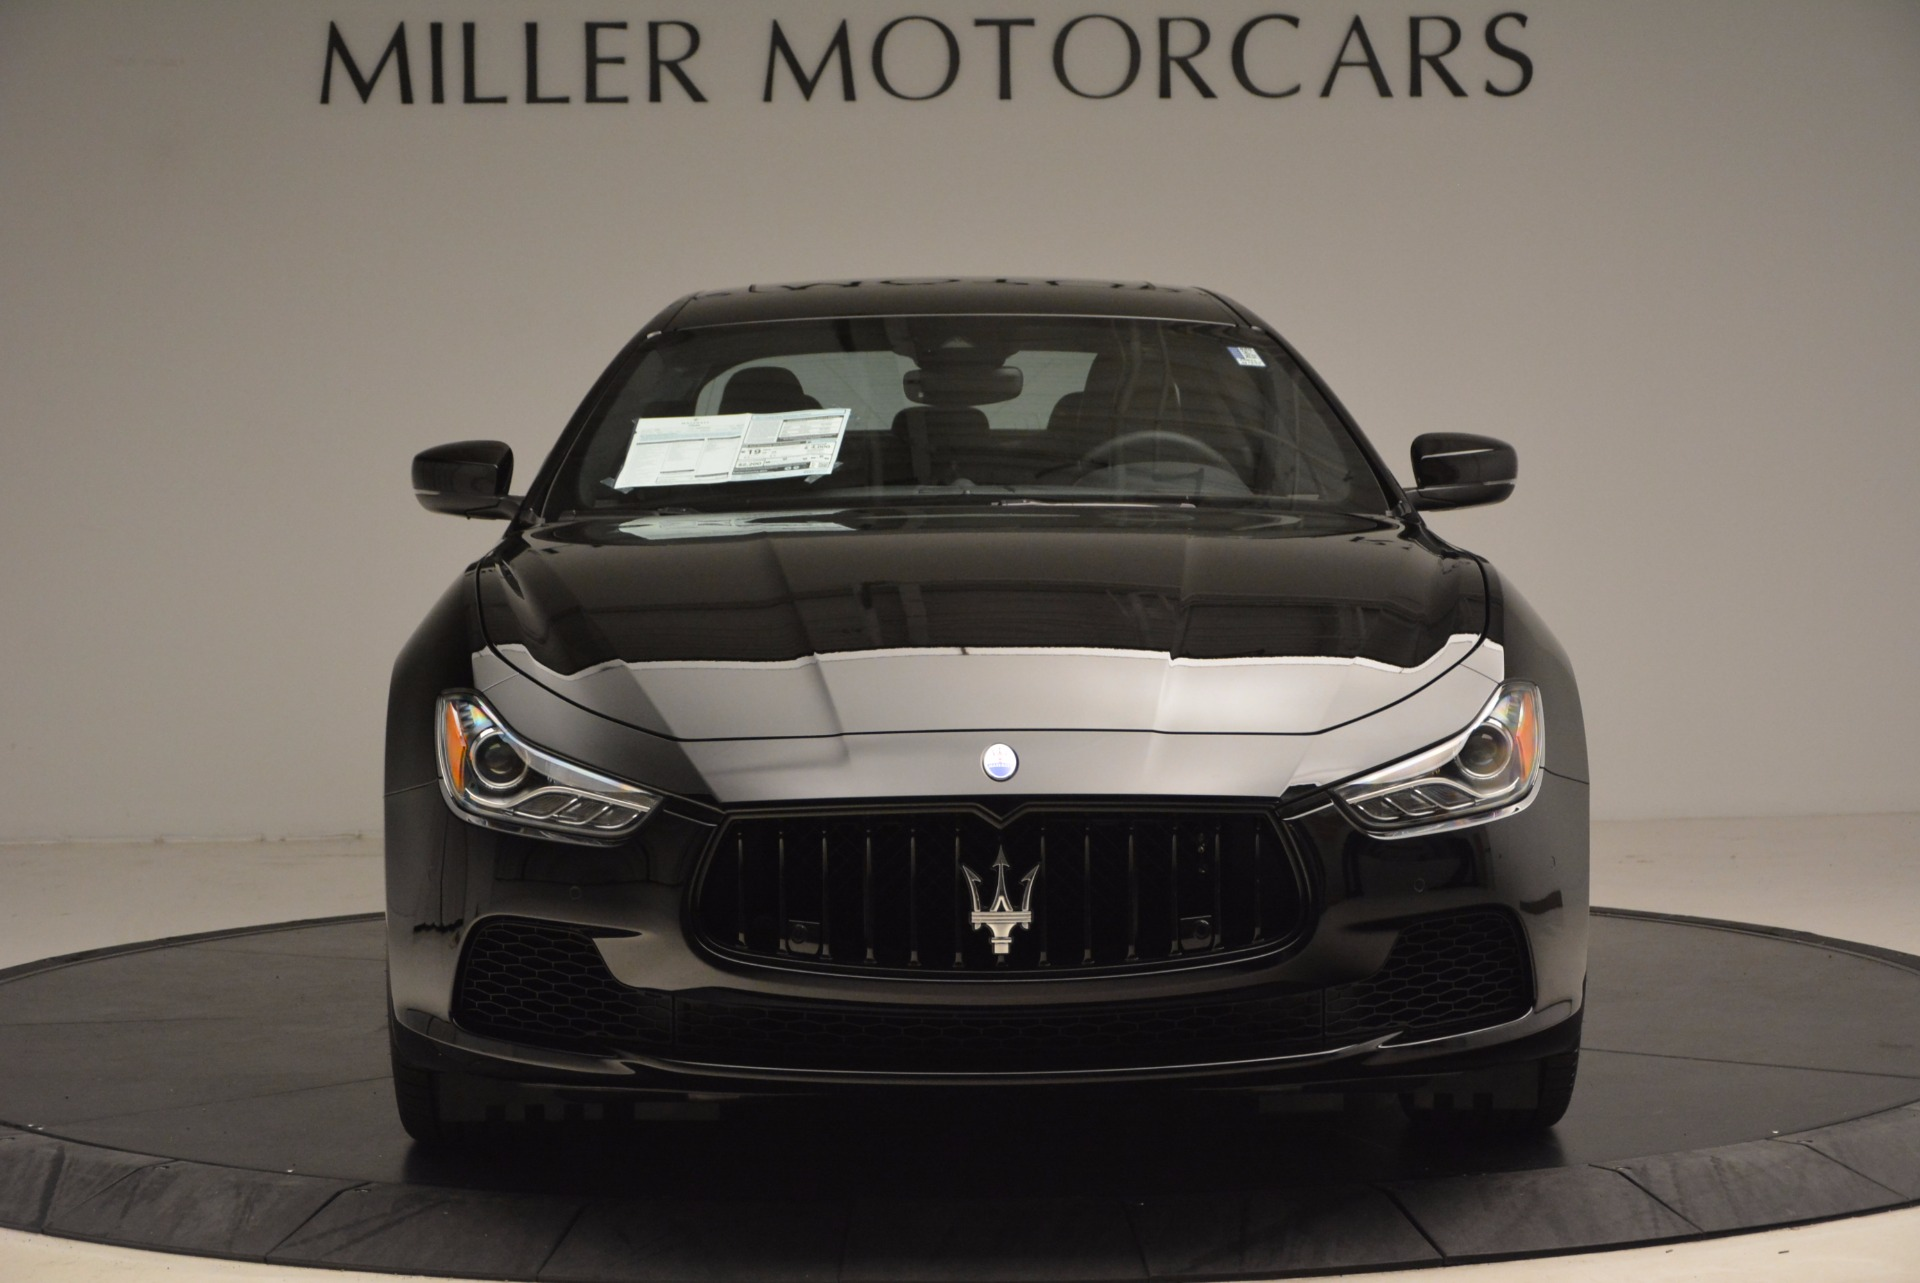 New 2017 Maserati Ghibli Nerissimo Edition S Q4 For Sale In Westport, CT 1420_p12